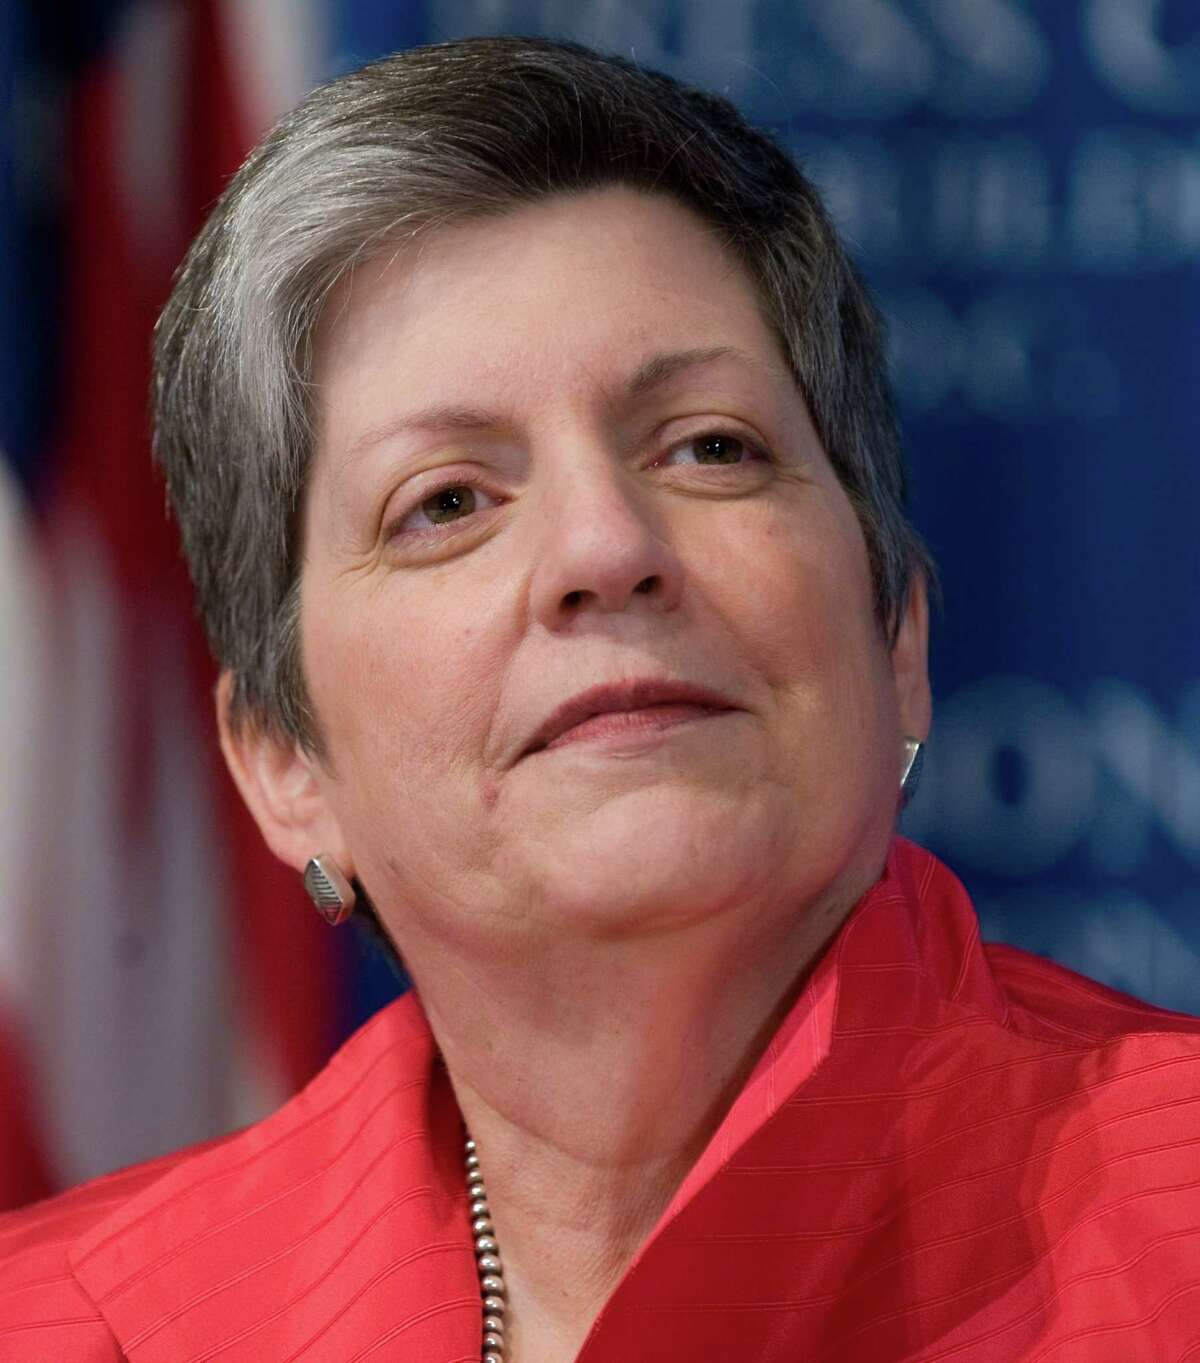 US Secretary of Homeland Security Janet Napolitano prior to speaking about aviation security issues at the National Press Club in Washington, DC, April 15, 2010. AFP PHOTO / Saul LOEB (Photo credit should read SAUL LOEB/AFP/Getty Images)